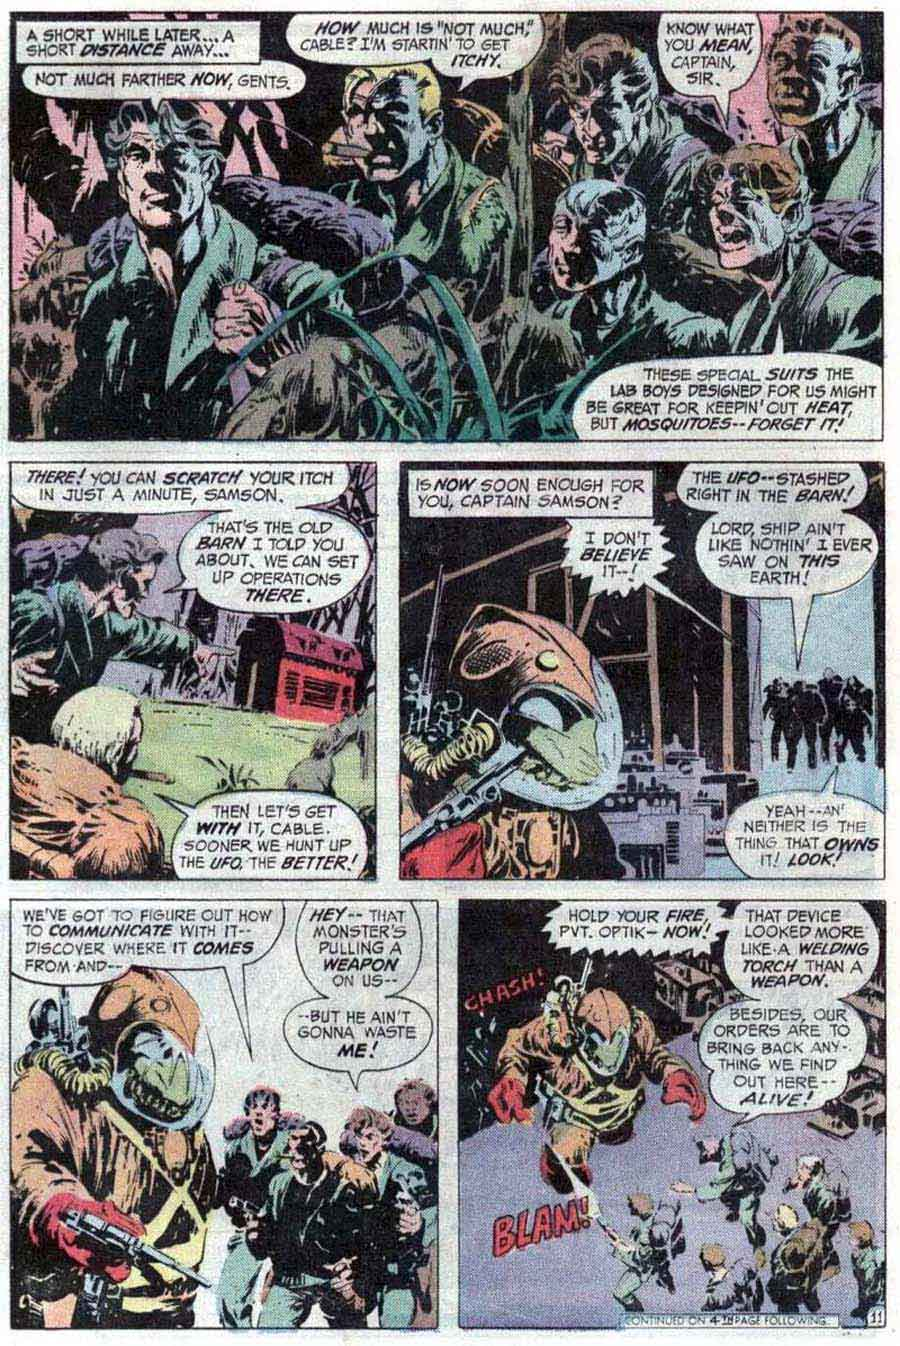 Swamp Thing v1 #9 1970s bronze age dc comic book page art by Bernie Wrightson